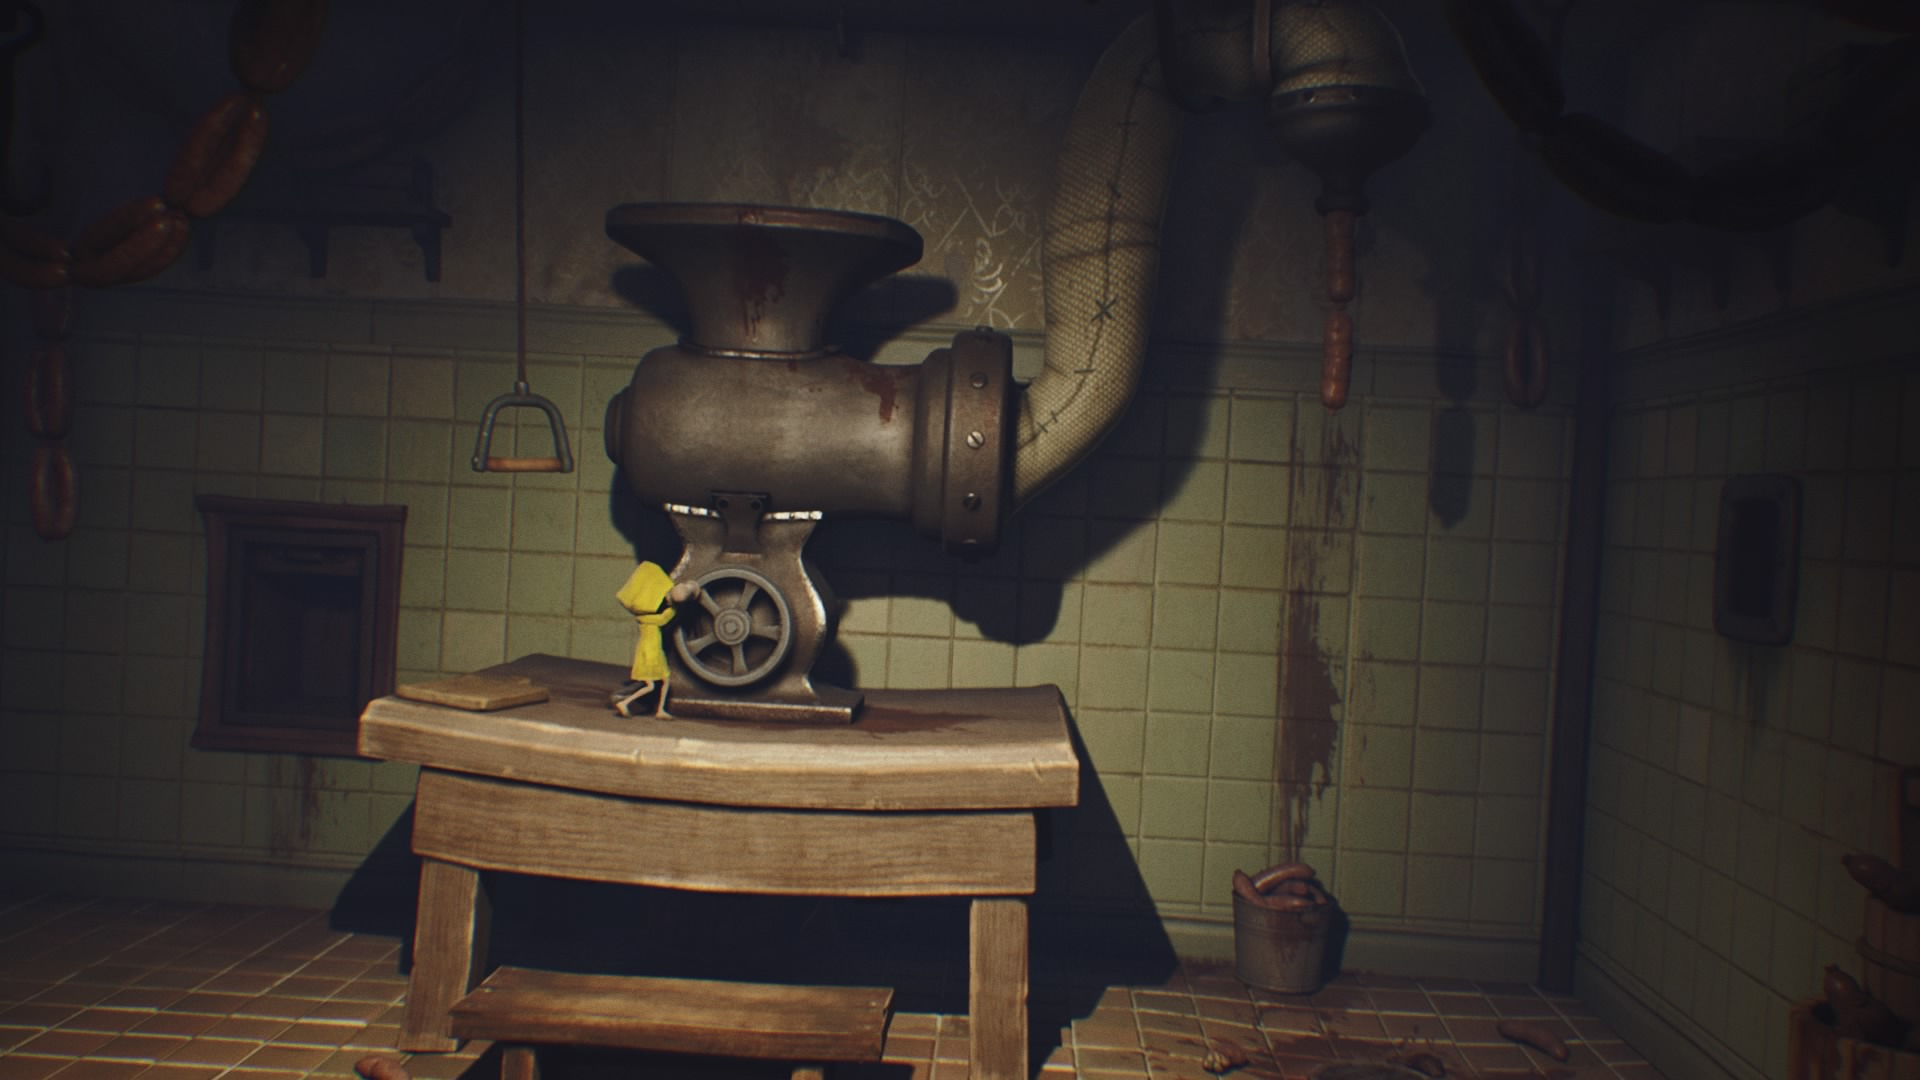 Little Nightmares análisis PS4 Xbox One PC